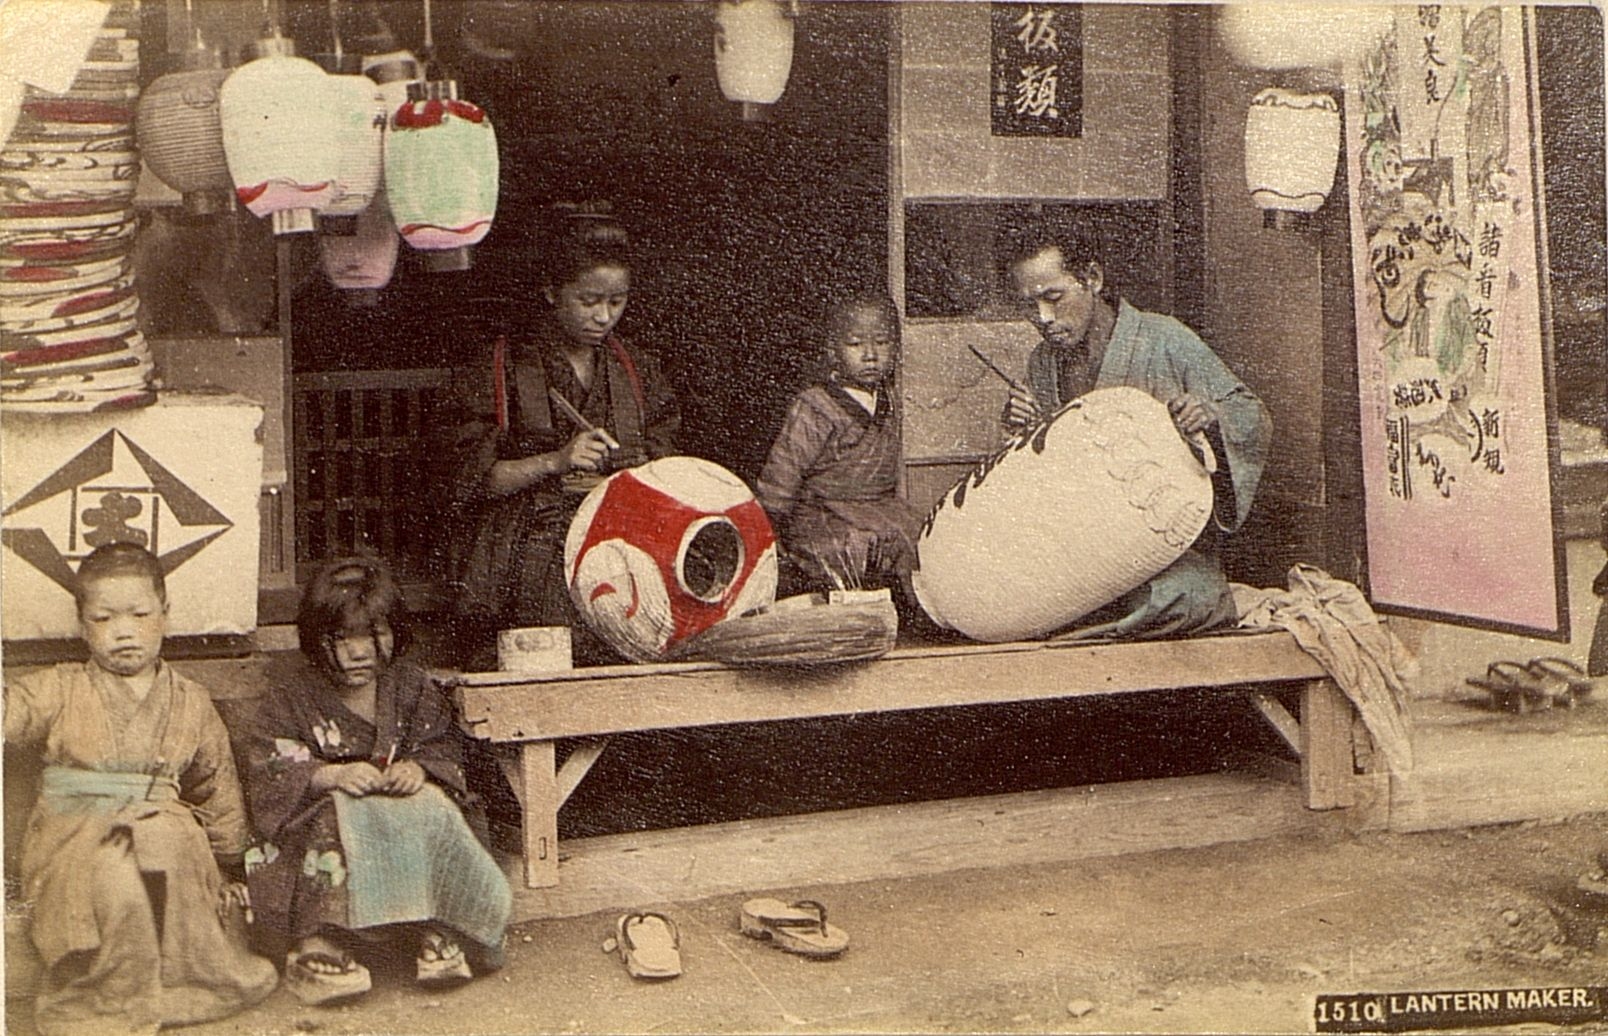 A lantern maker and his family, ca. 1890s